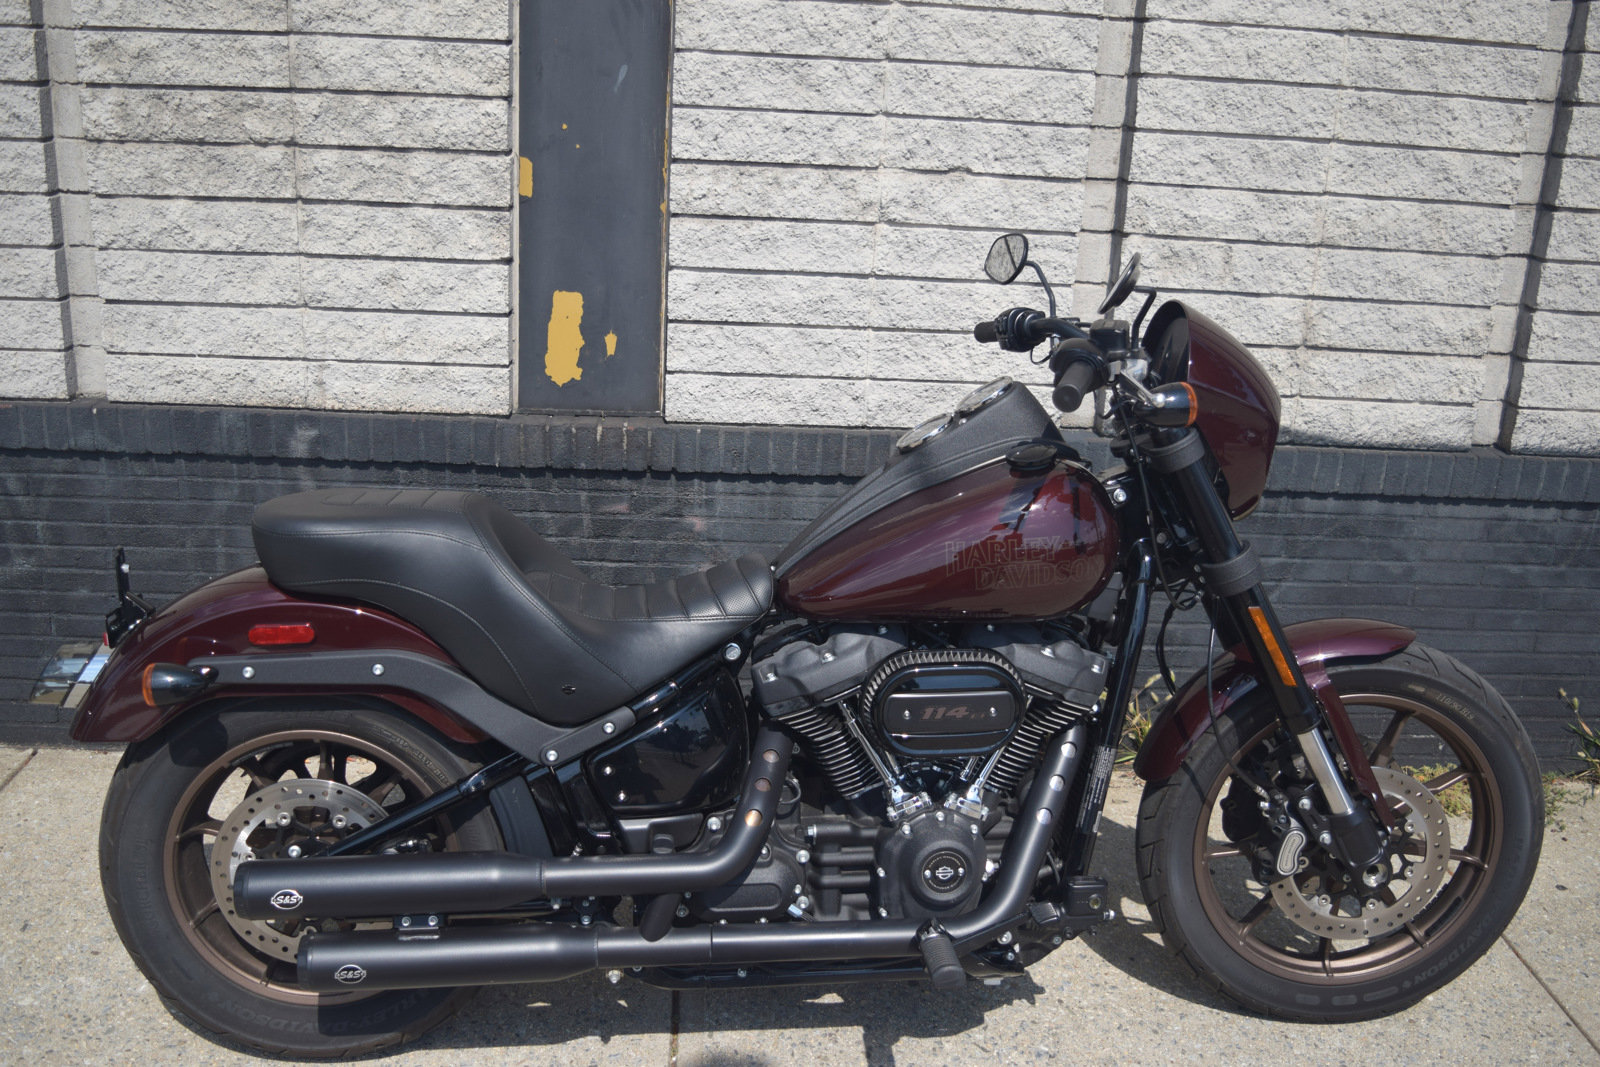 Pre-Owned 2021 Harley-Davidson Softail Low Rider S FXLRS